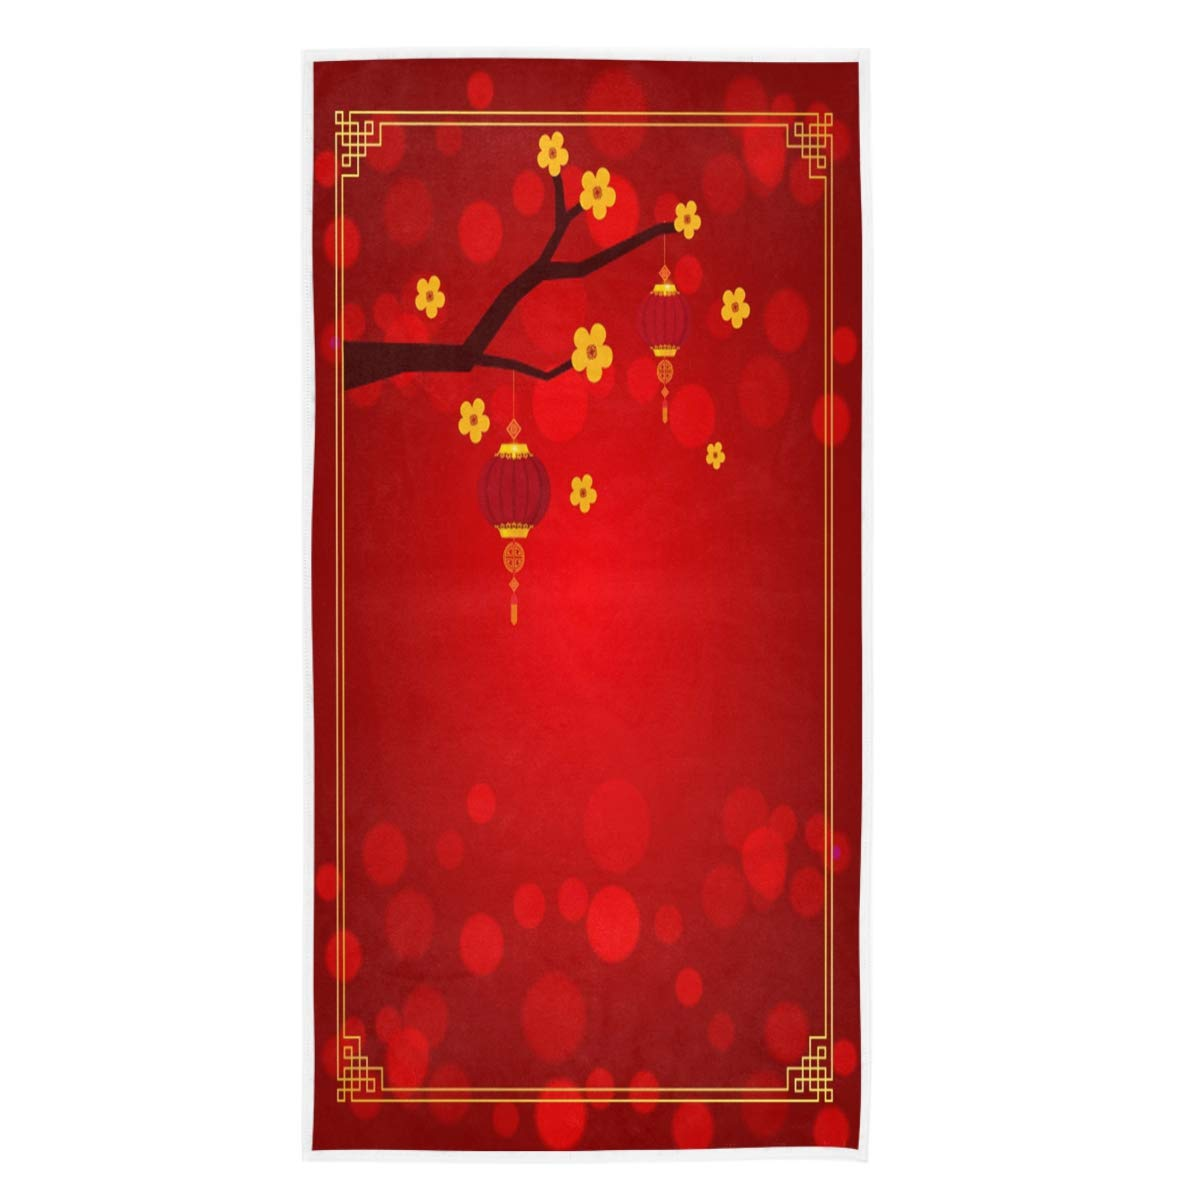 Hotel Naanle New Year Festive Chinese Plum Blossom Soft Highly Absorbent Guest Large Home Decorative Hand Towels Multipurpose for Bathroom Gym and Spa 16 x 30 Inches